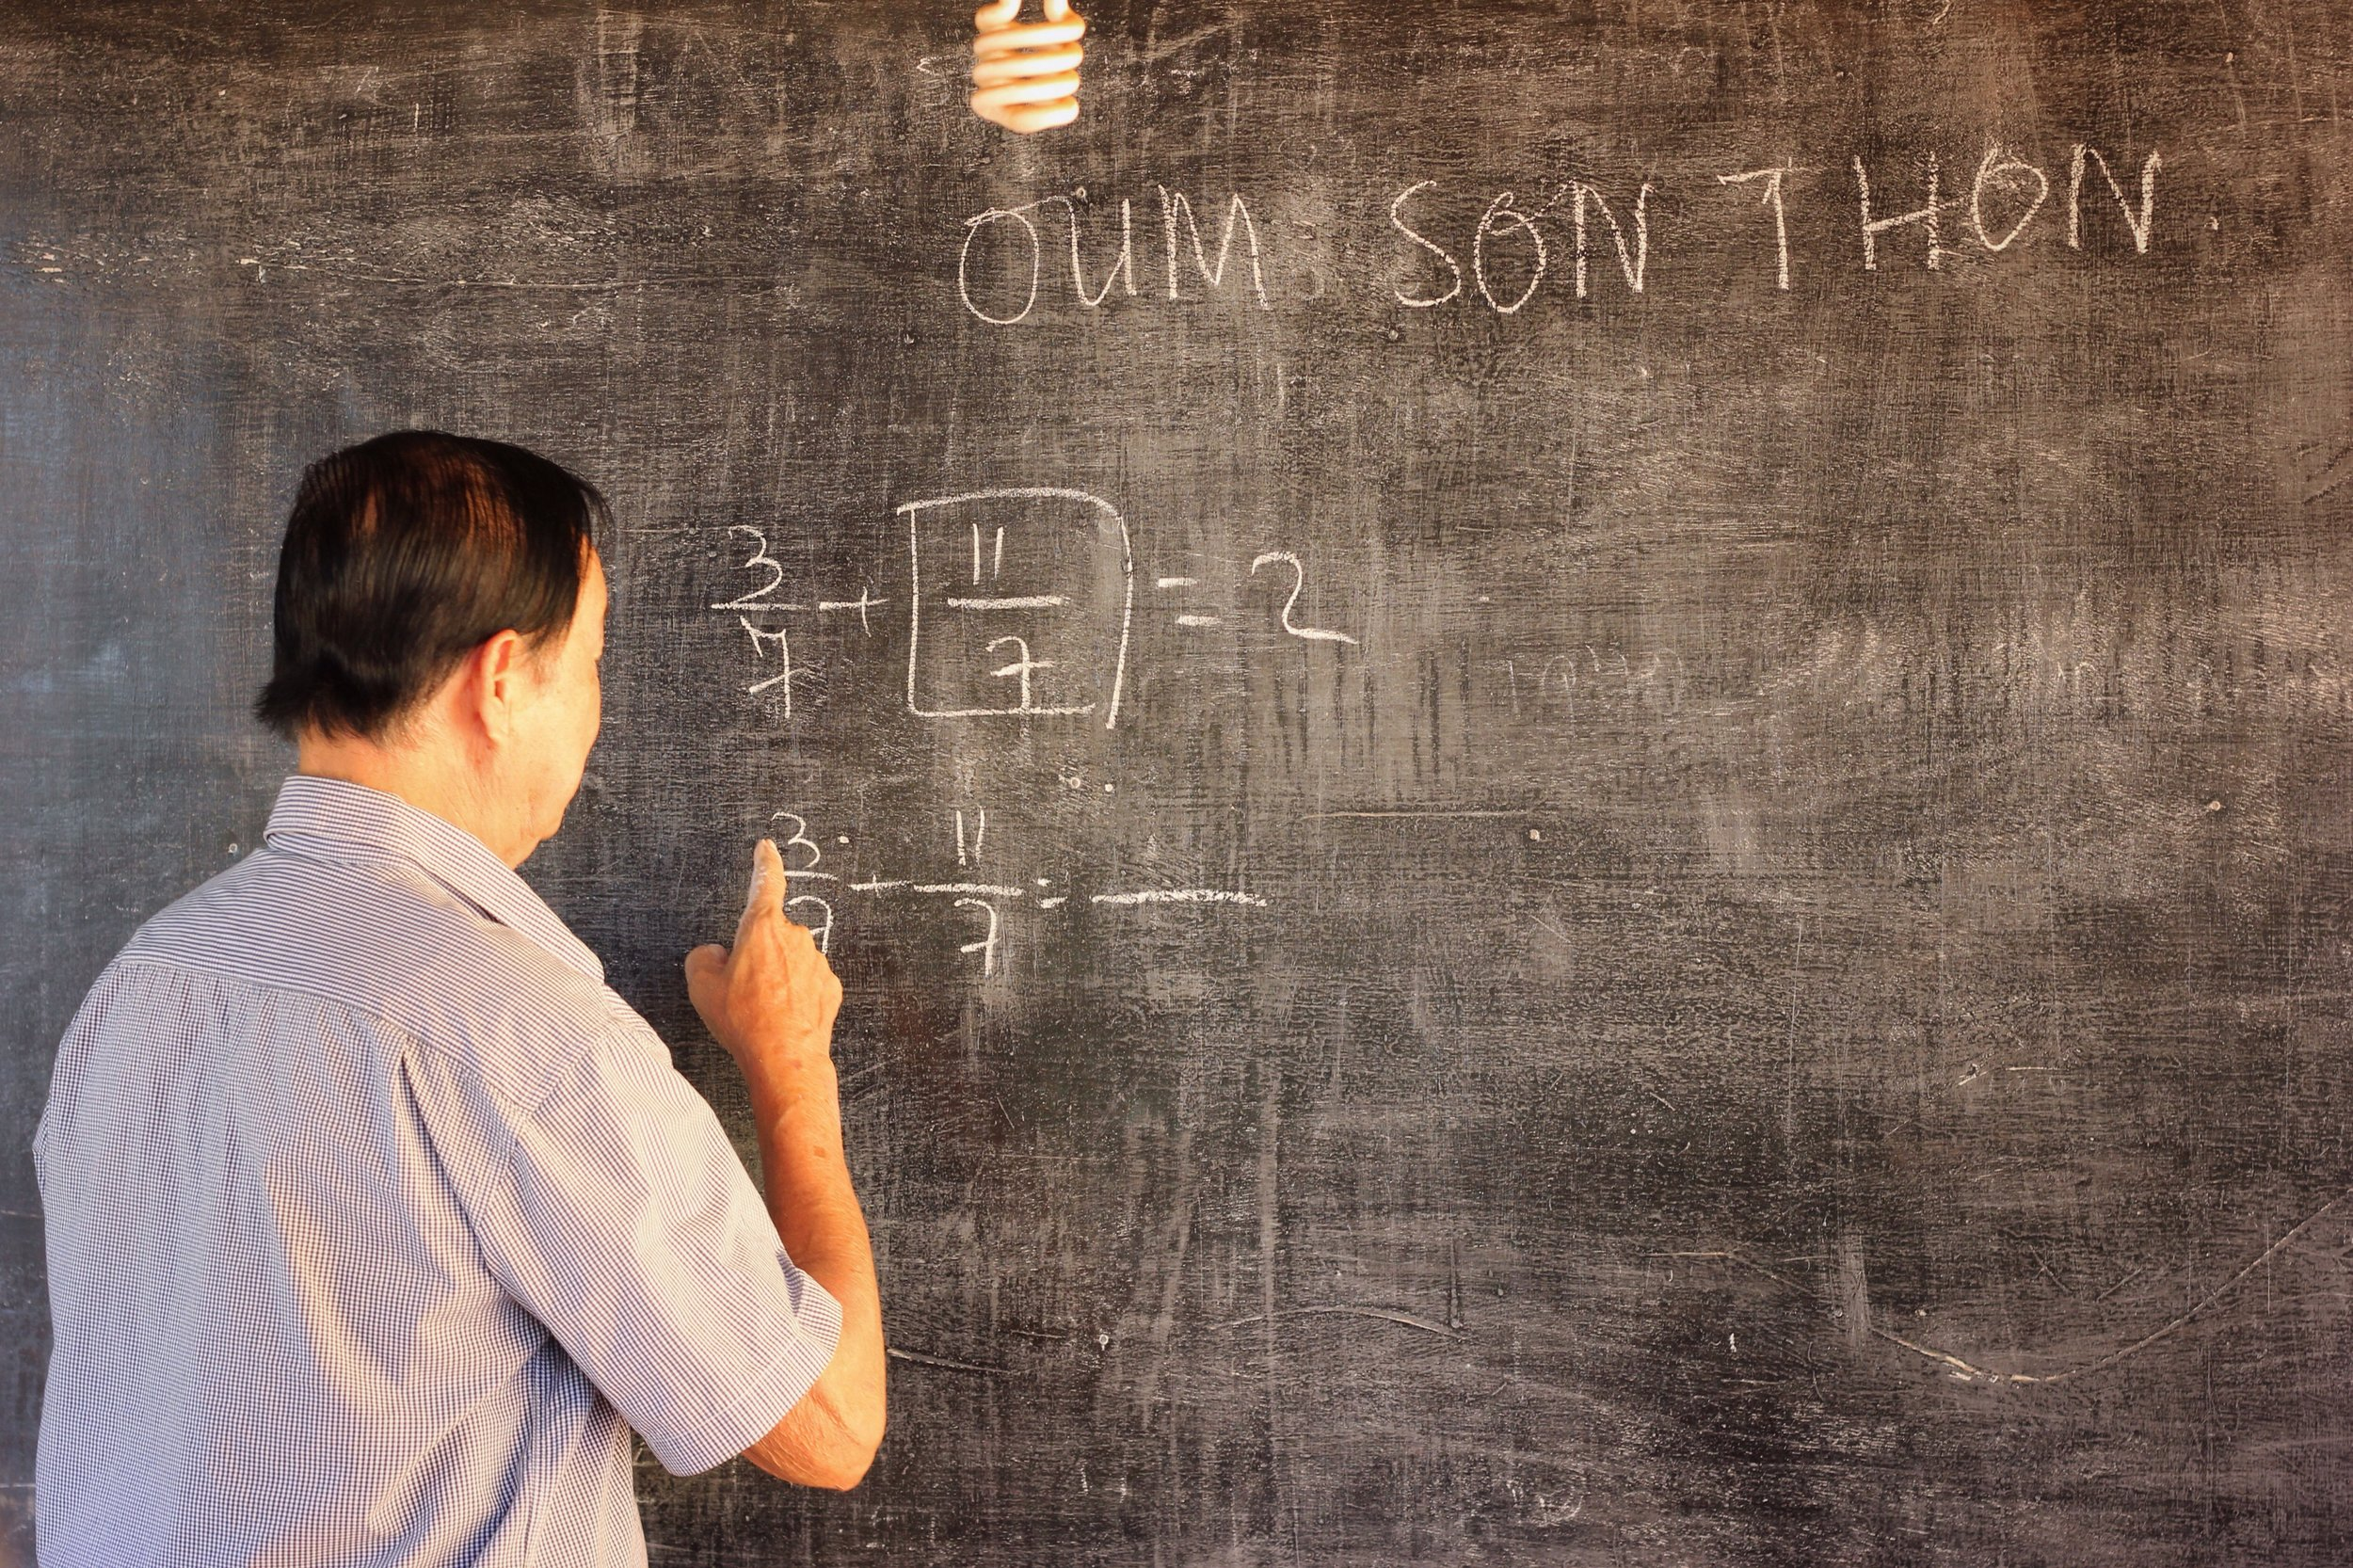 Oum Son Thon takes us through some math problems after giving us his history lesson.